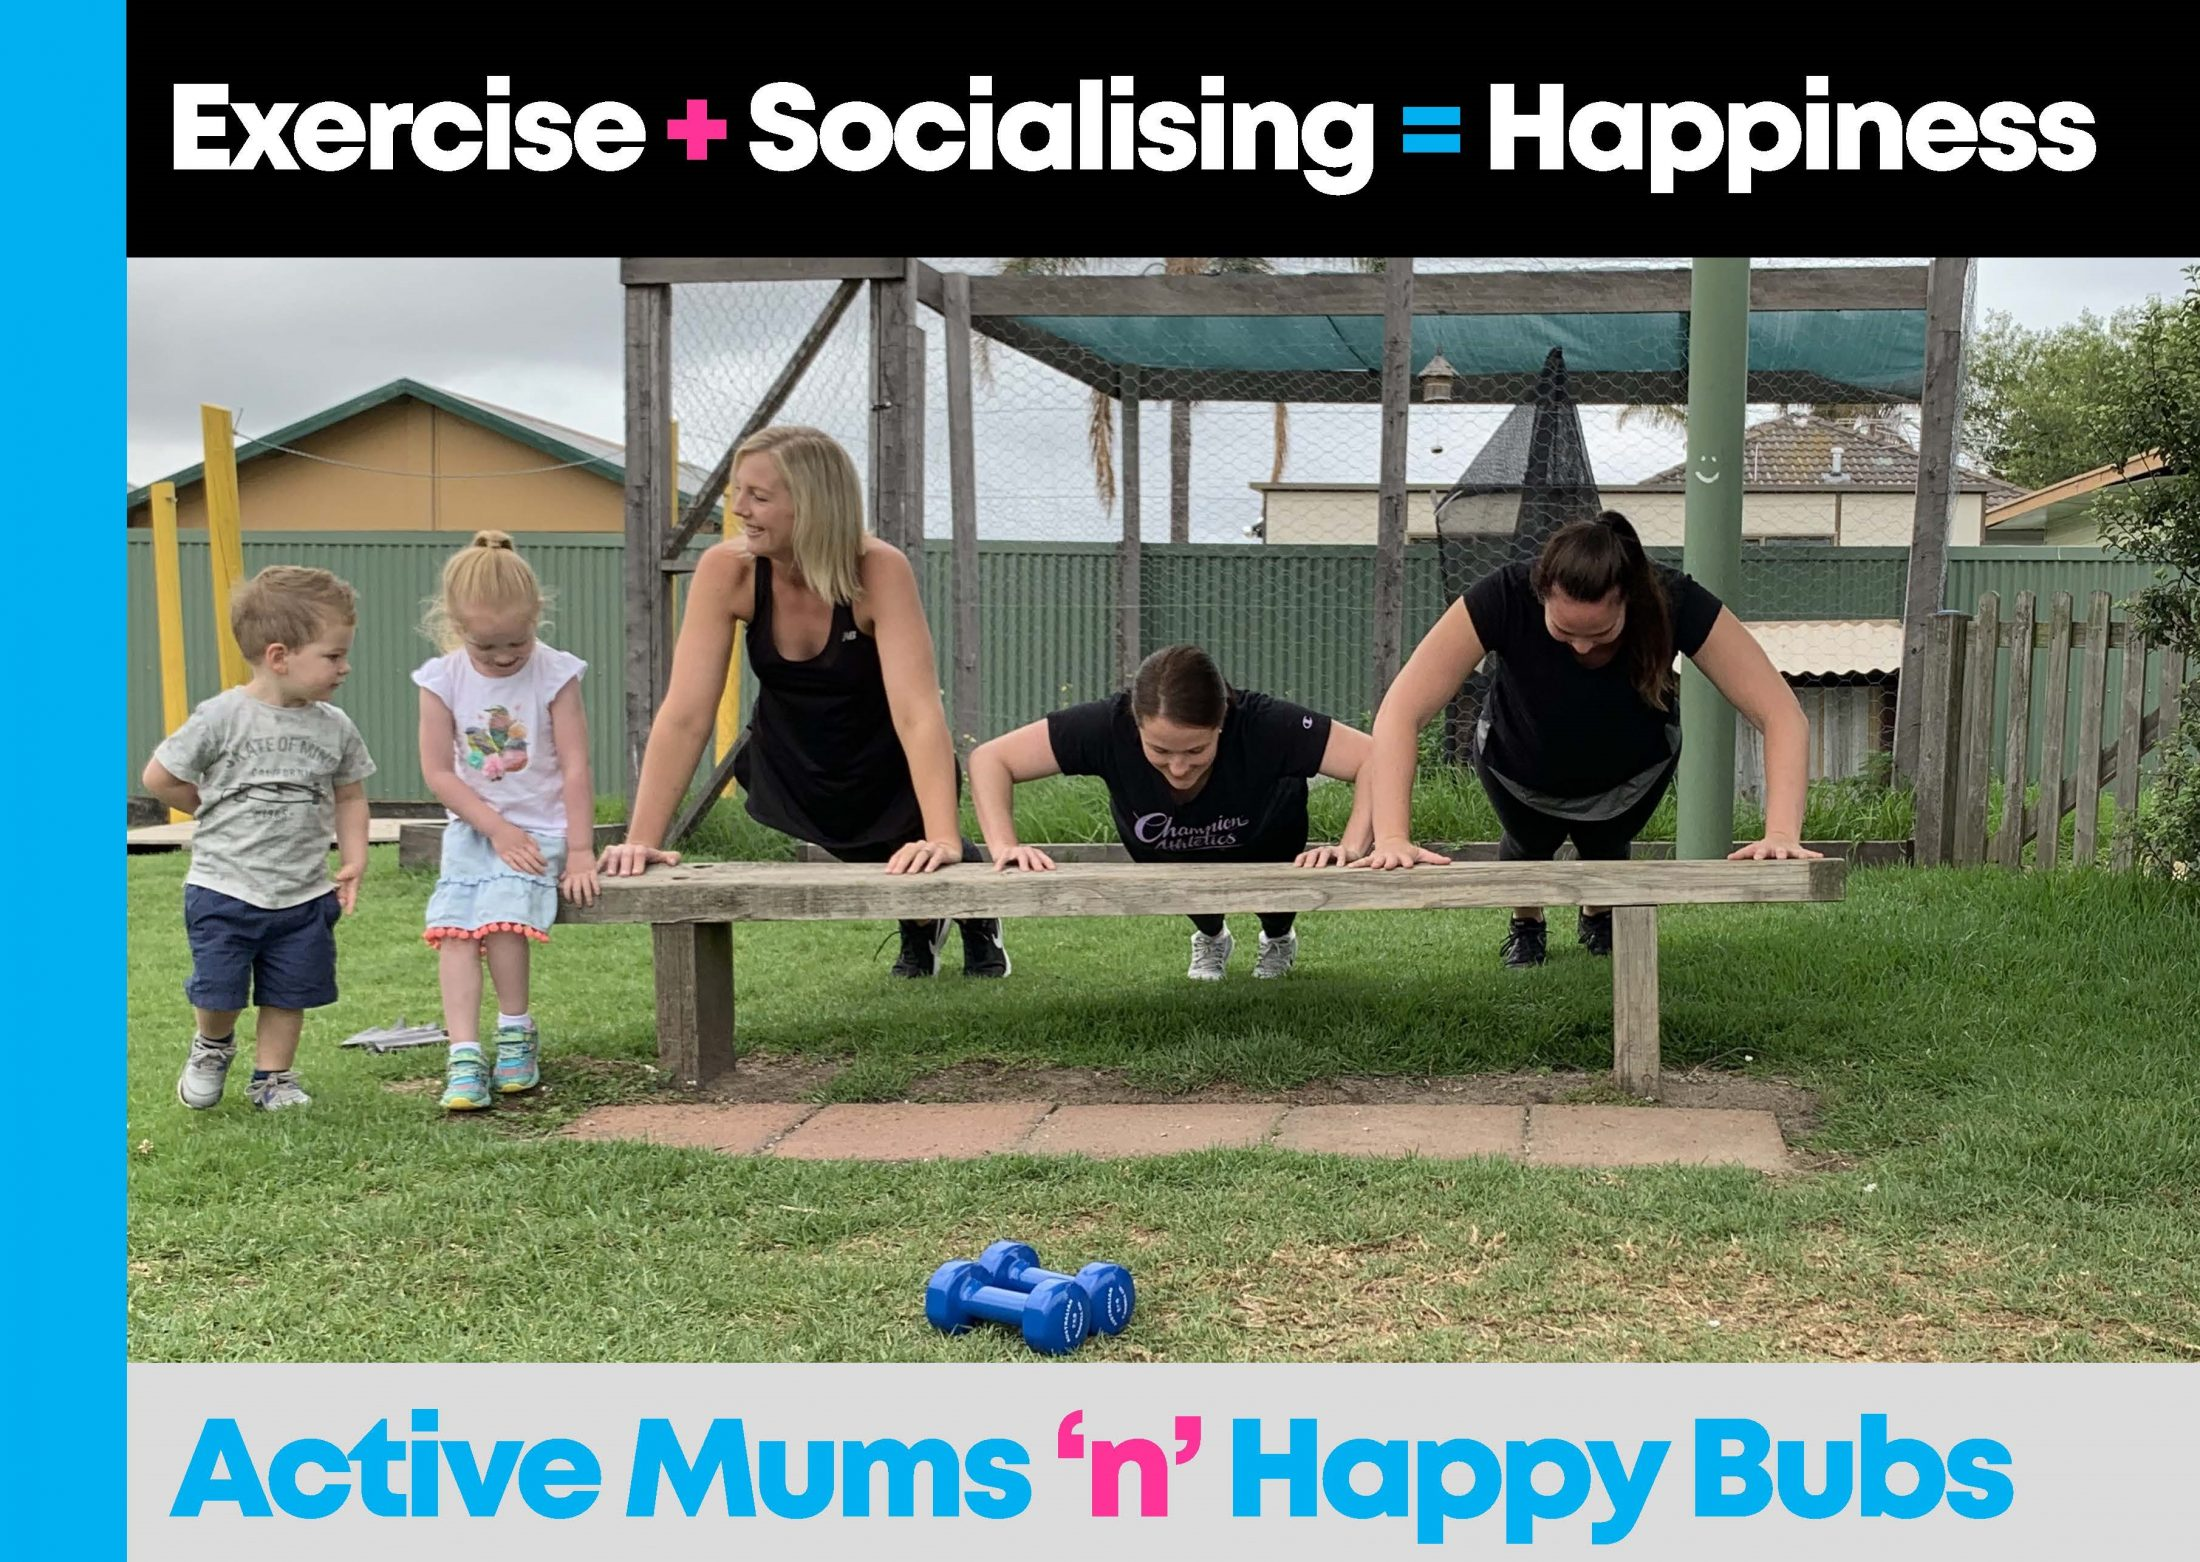 Active Mums n Happy Bubs Image